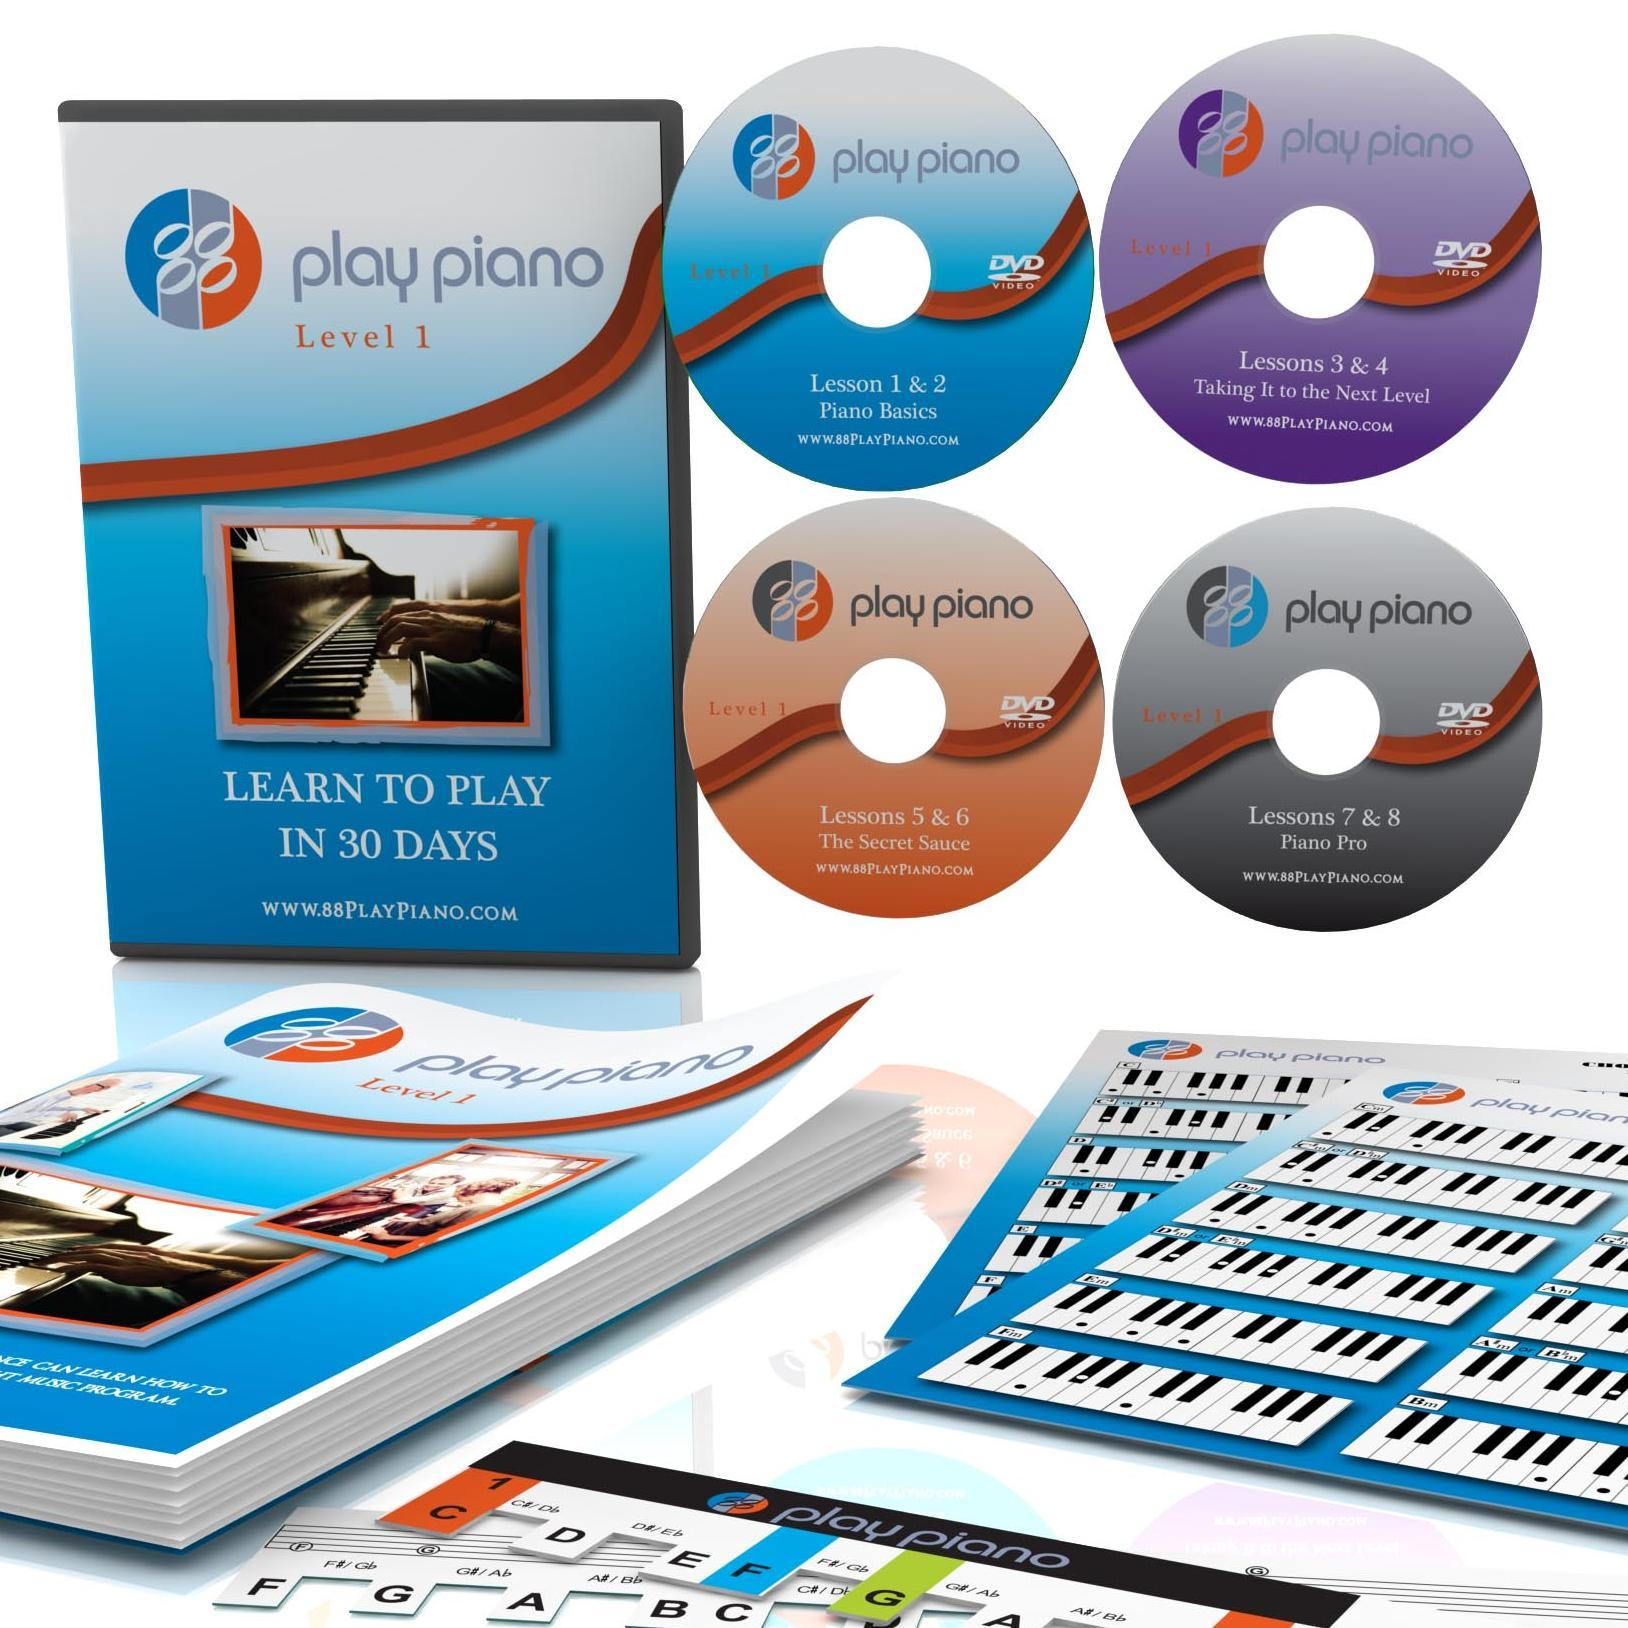 88 Play Piano - This is an innovative way to learn to play the piano quickly. At your own pace, in your own home, on your own time. You'll be playing 8 songs using both your left and right hands and sound amazing quickly!